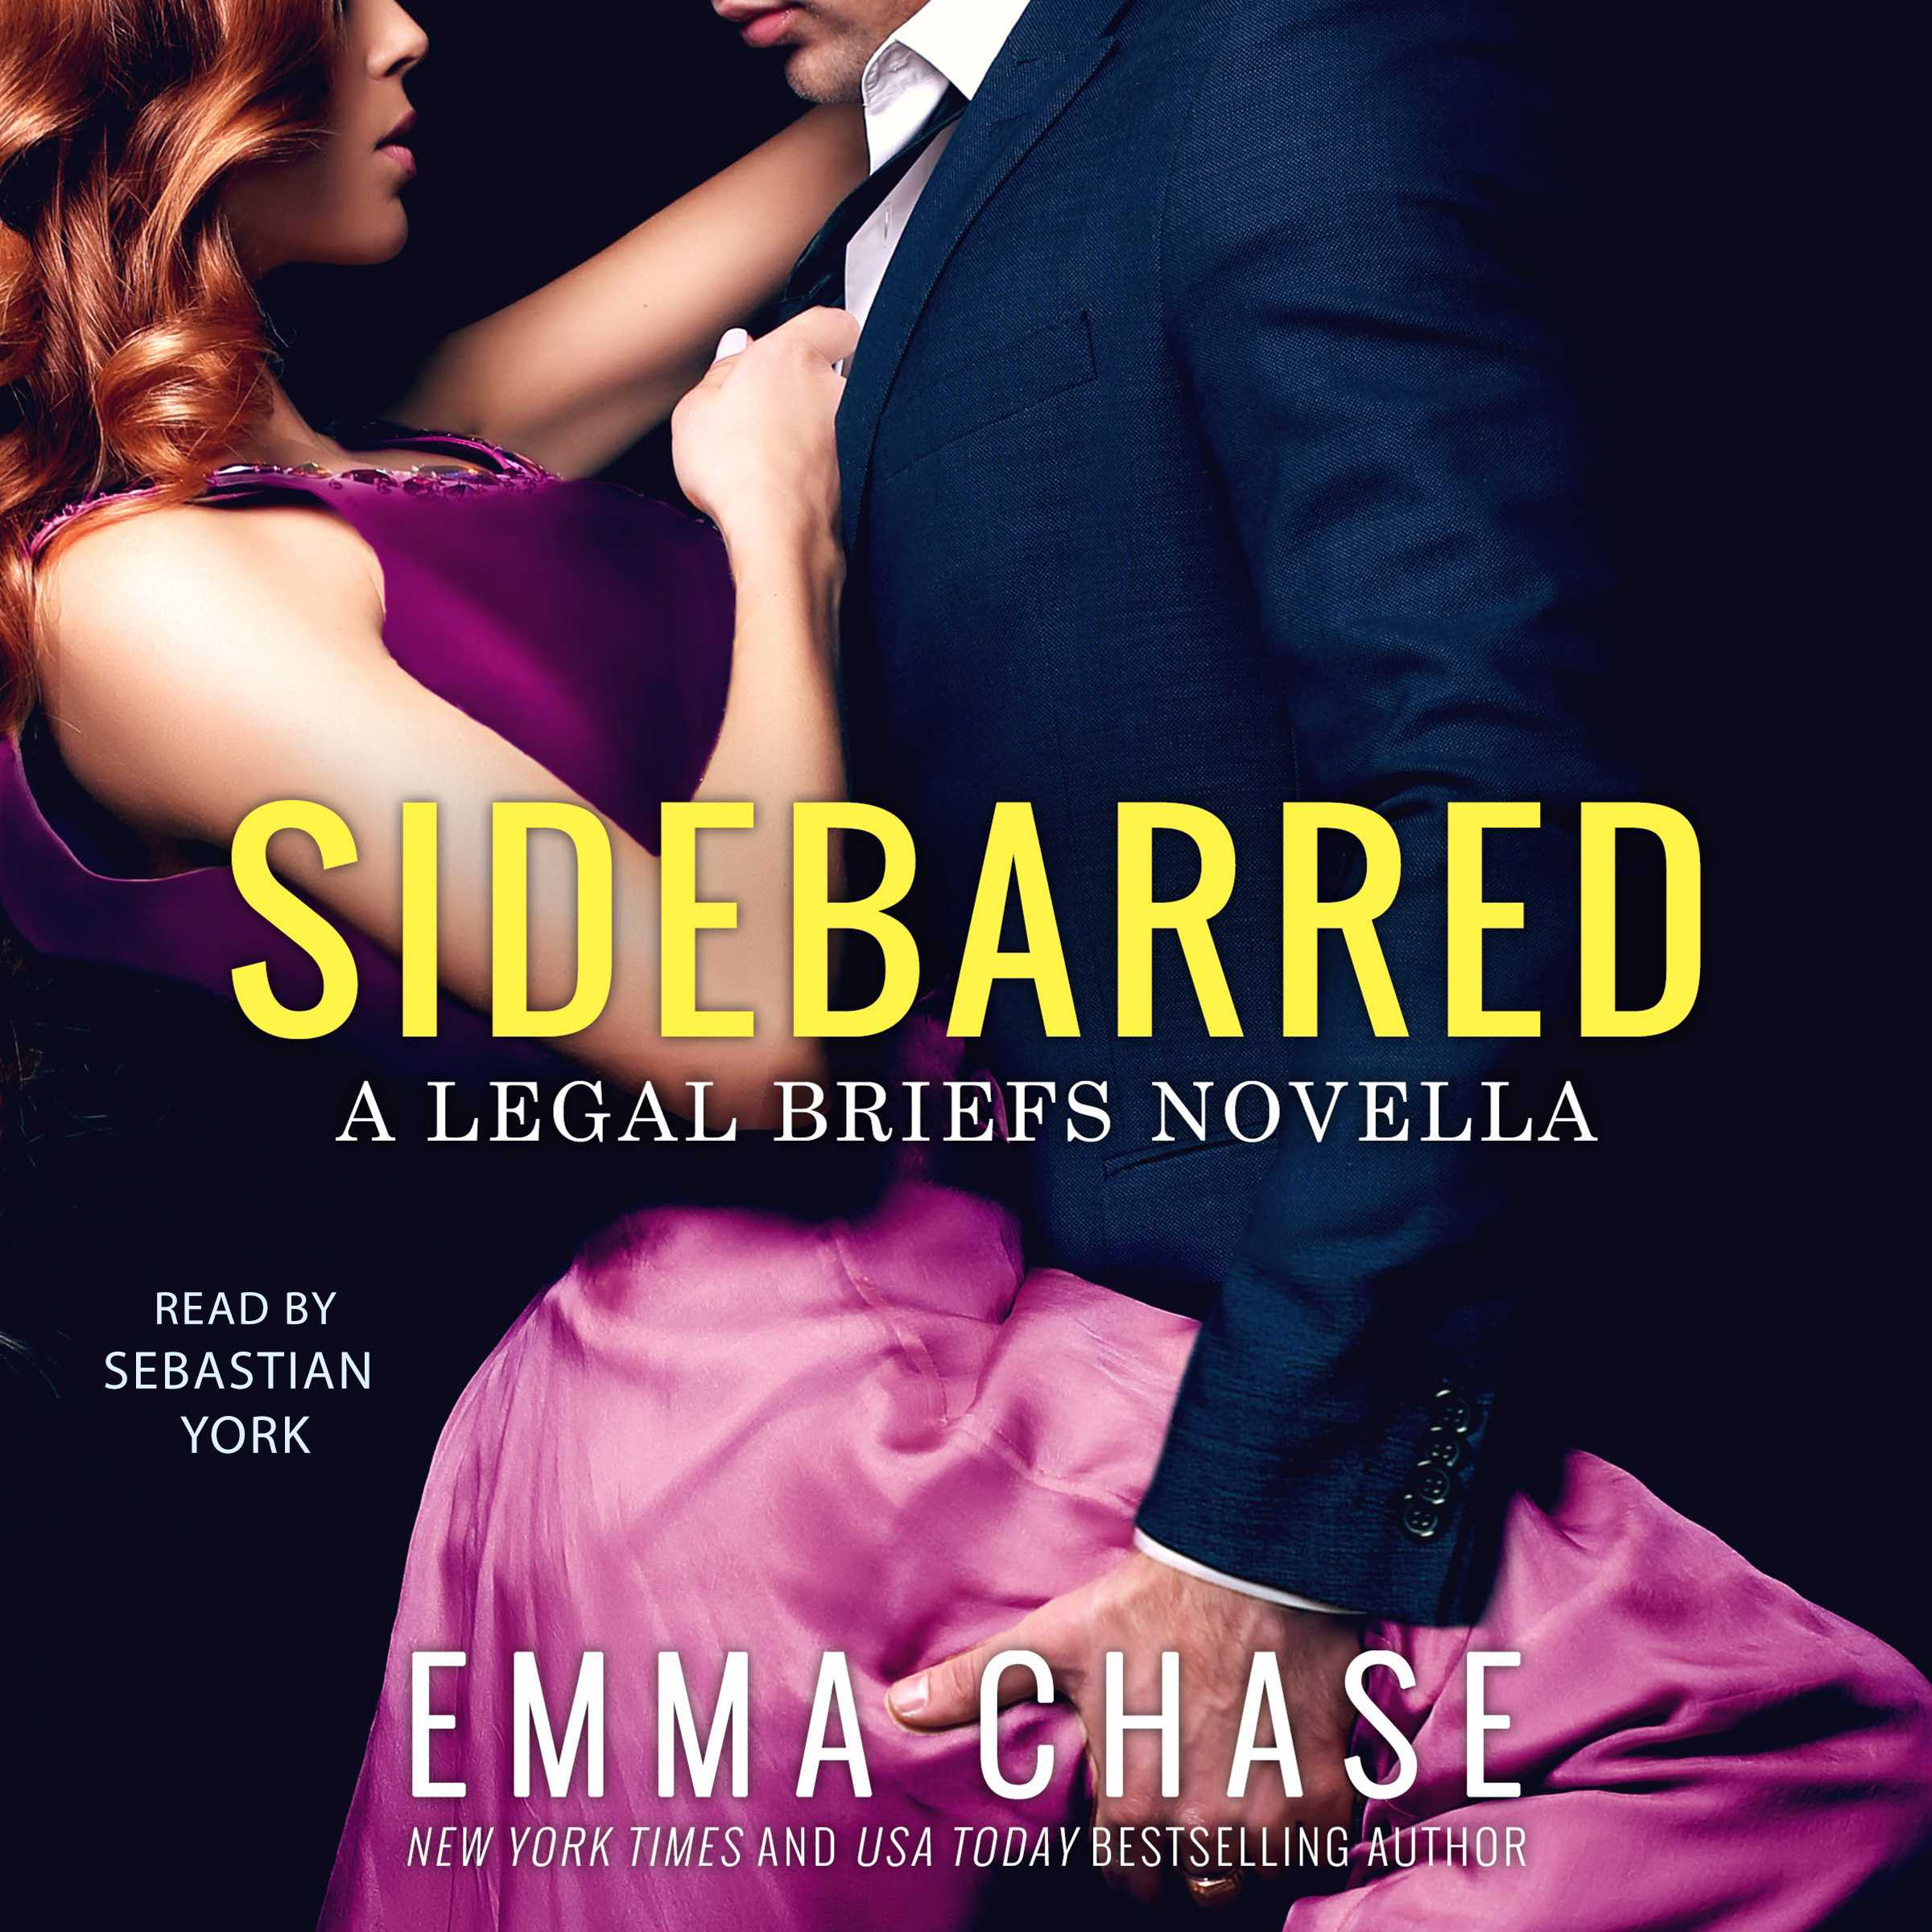 tangled emma chase epub free download